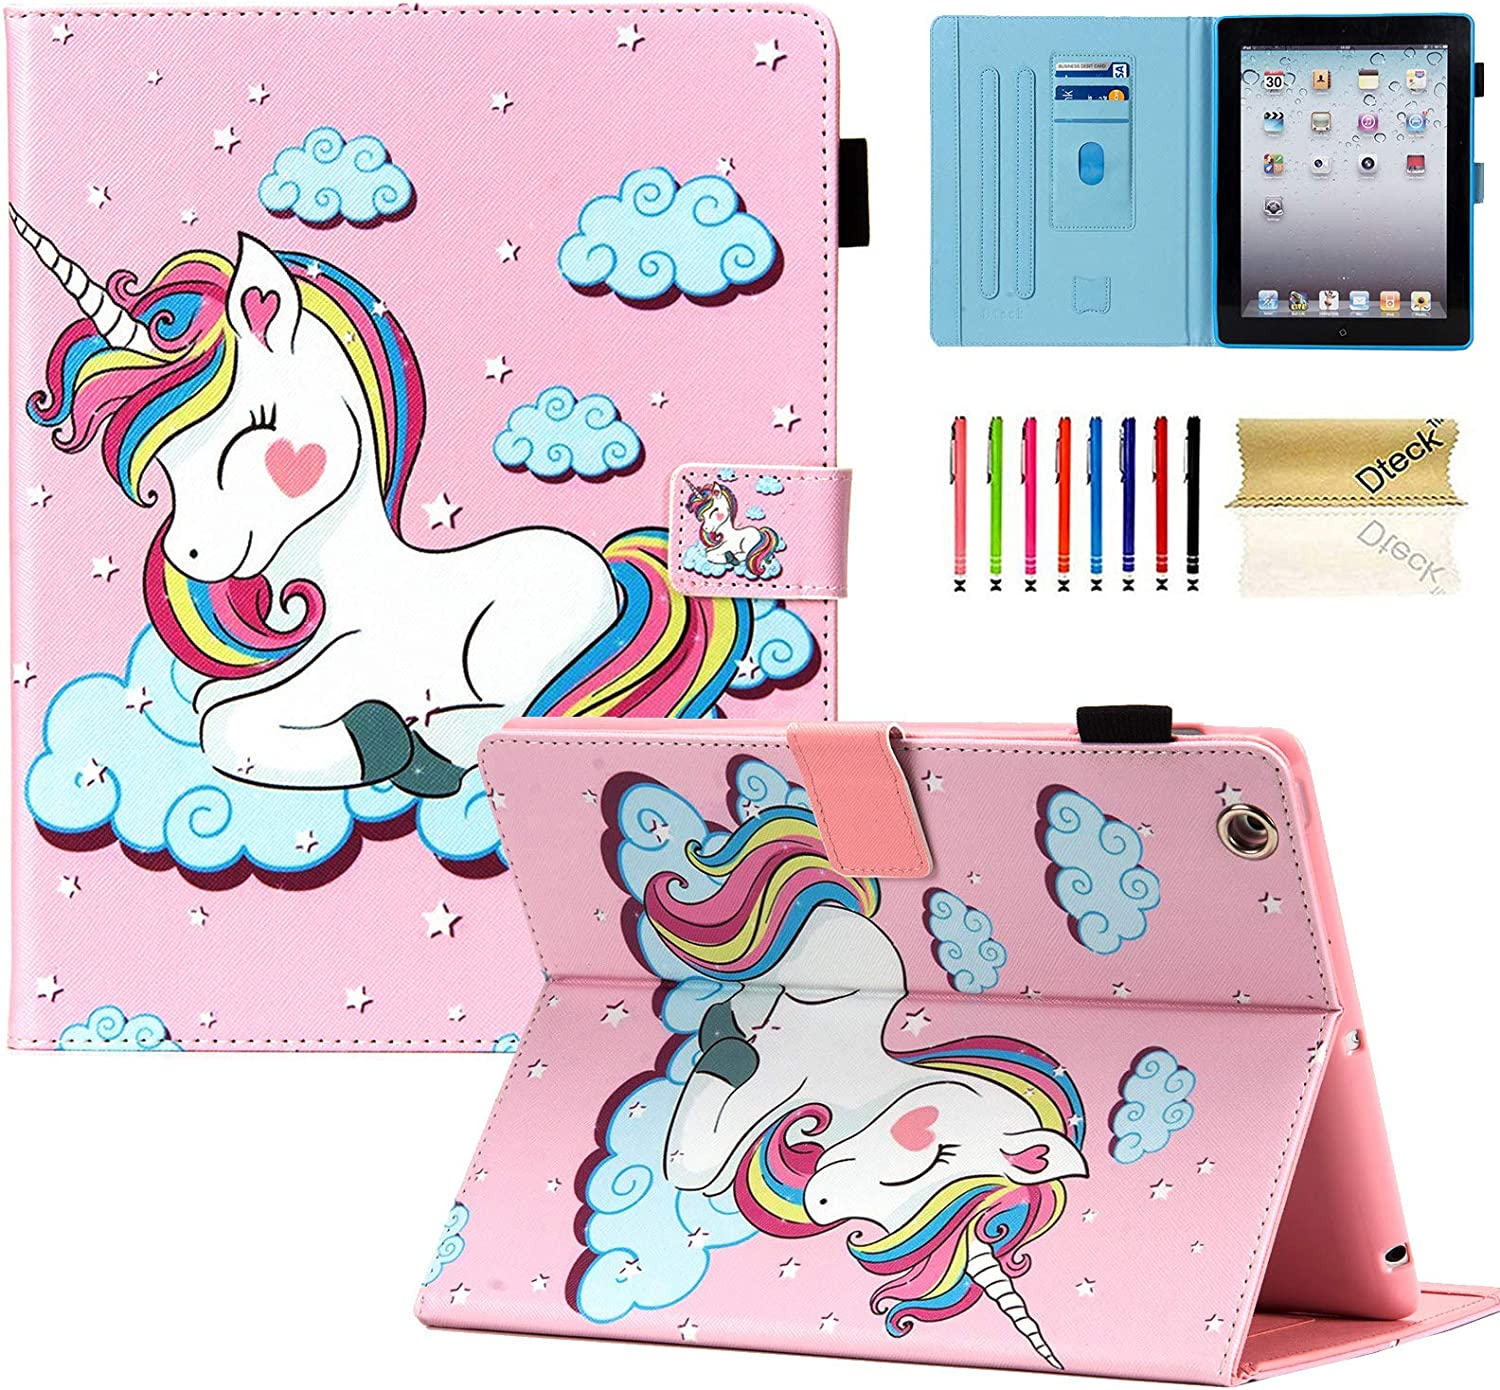 iPad 2 Case, iPad 3 Case, iPad 4 Case, iPad 2/3/4 9.7 inch Case, Dteck PU Leather Folio Adjustable Stand Auto Wake/Sleep Smart Wallet Case for Apple iPad 2nd 3rd 4th Generation, Pink Unicorn